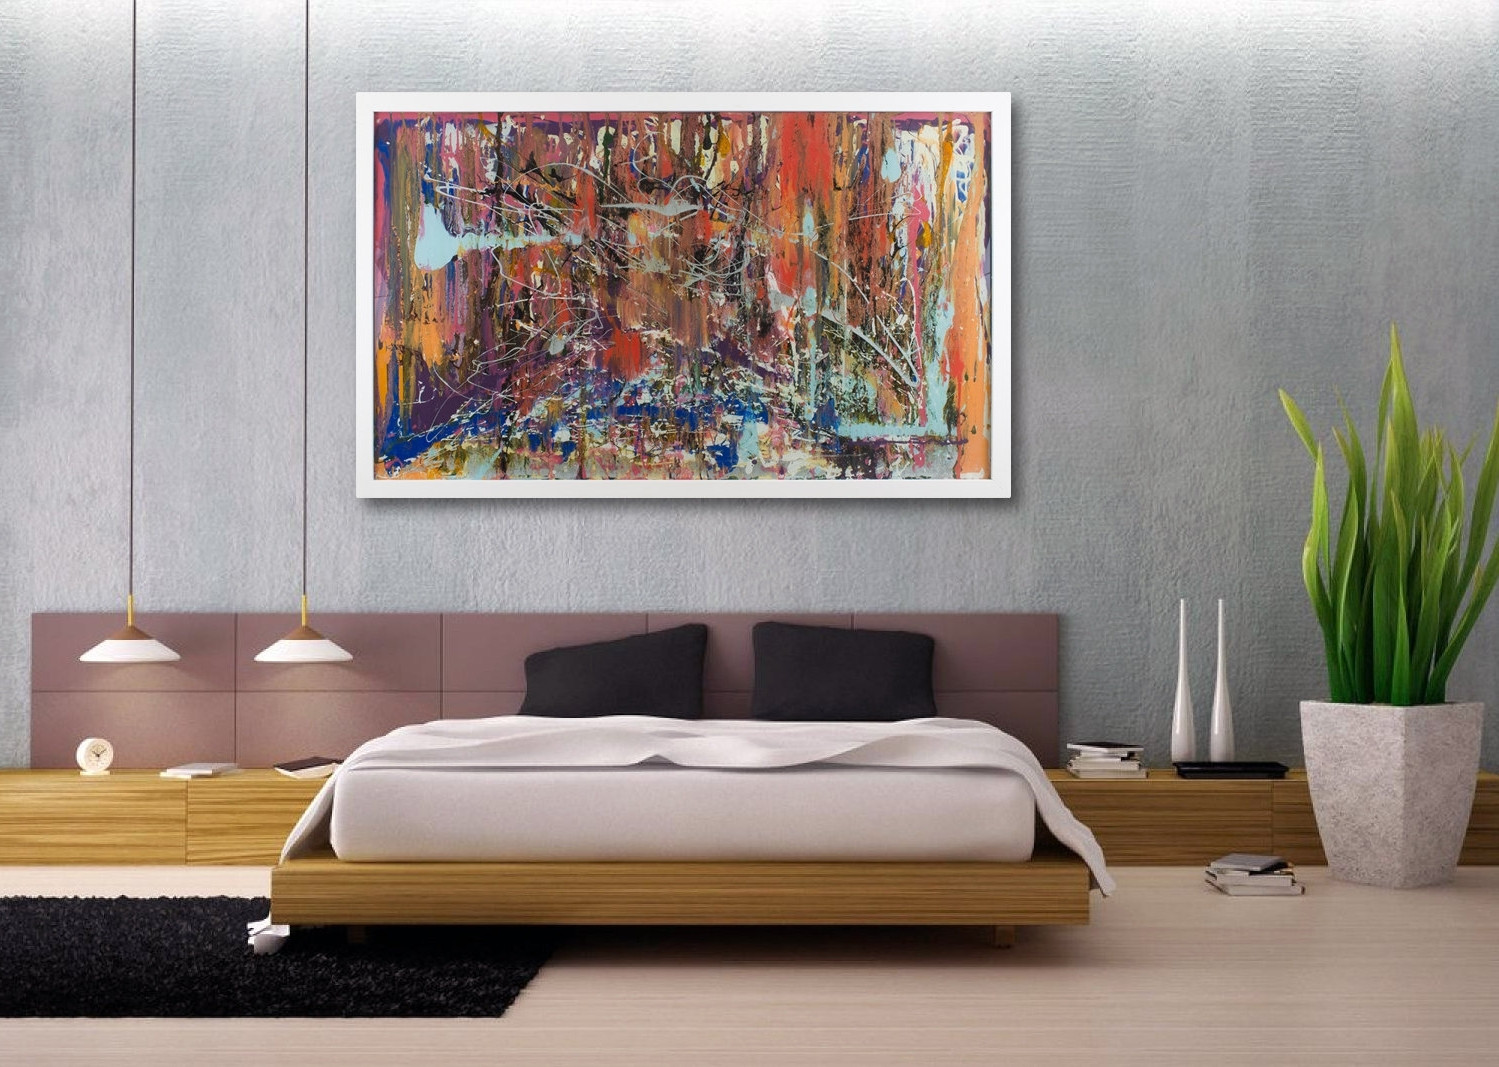 Fashionable Innovative Way Modern Wall Decor Room — Joanne Russo Homesjoanne In Art For Large Wall (View 7 of 15)